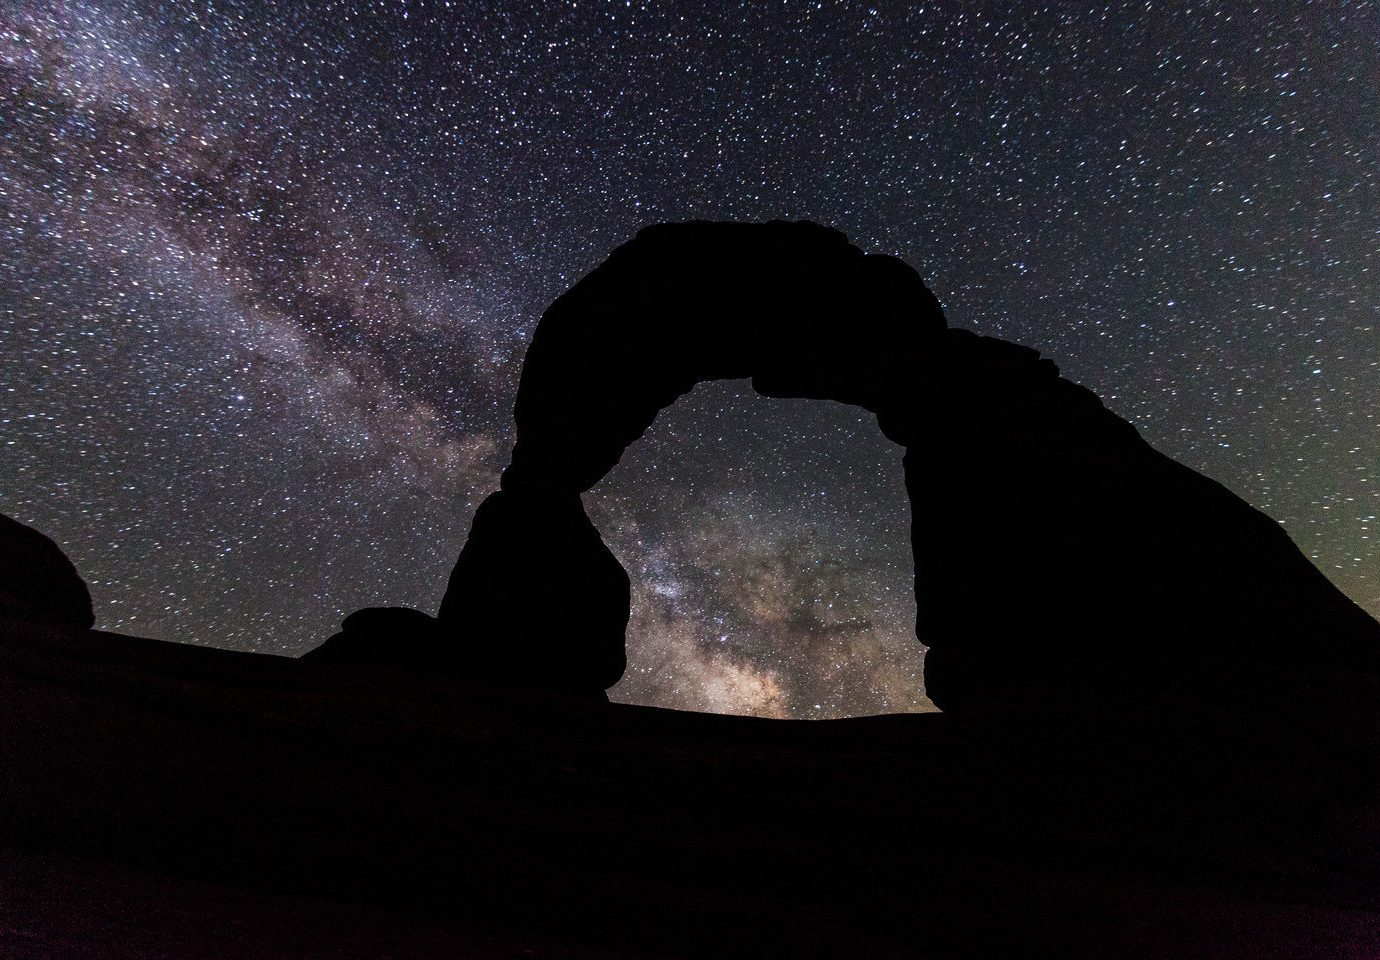 National Parks Outdoors + Adventure Trip Ideas dark darkness night atmosphere mountain astronomical object astronomy moon moonlight galaxy star outer space space Night Sky silhouette